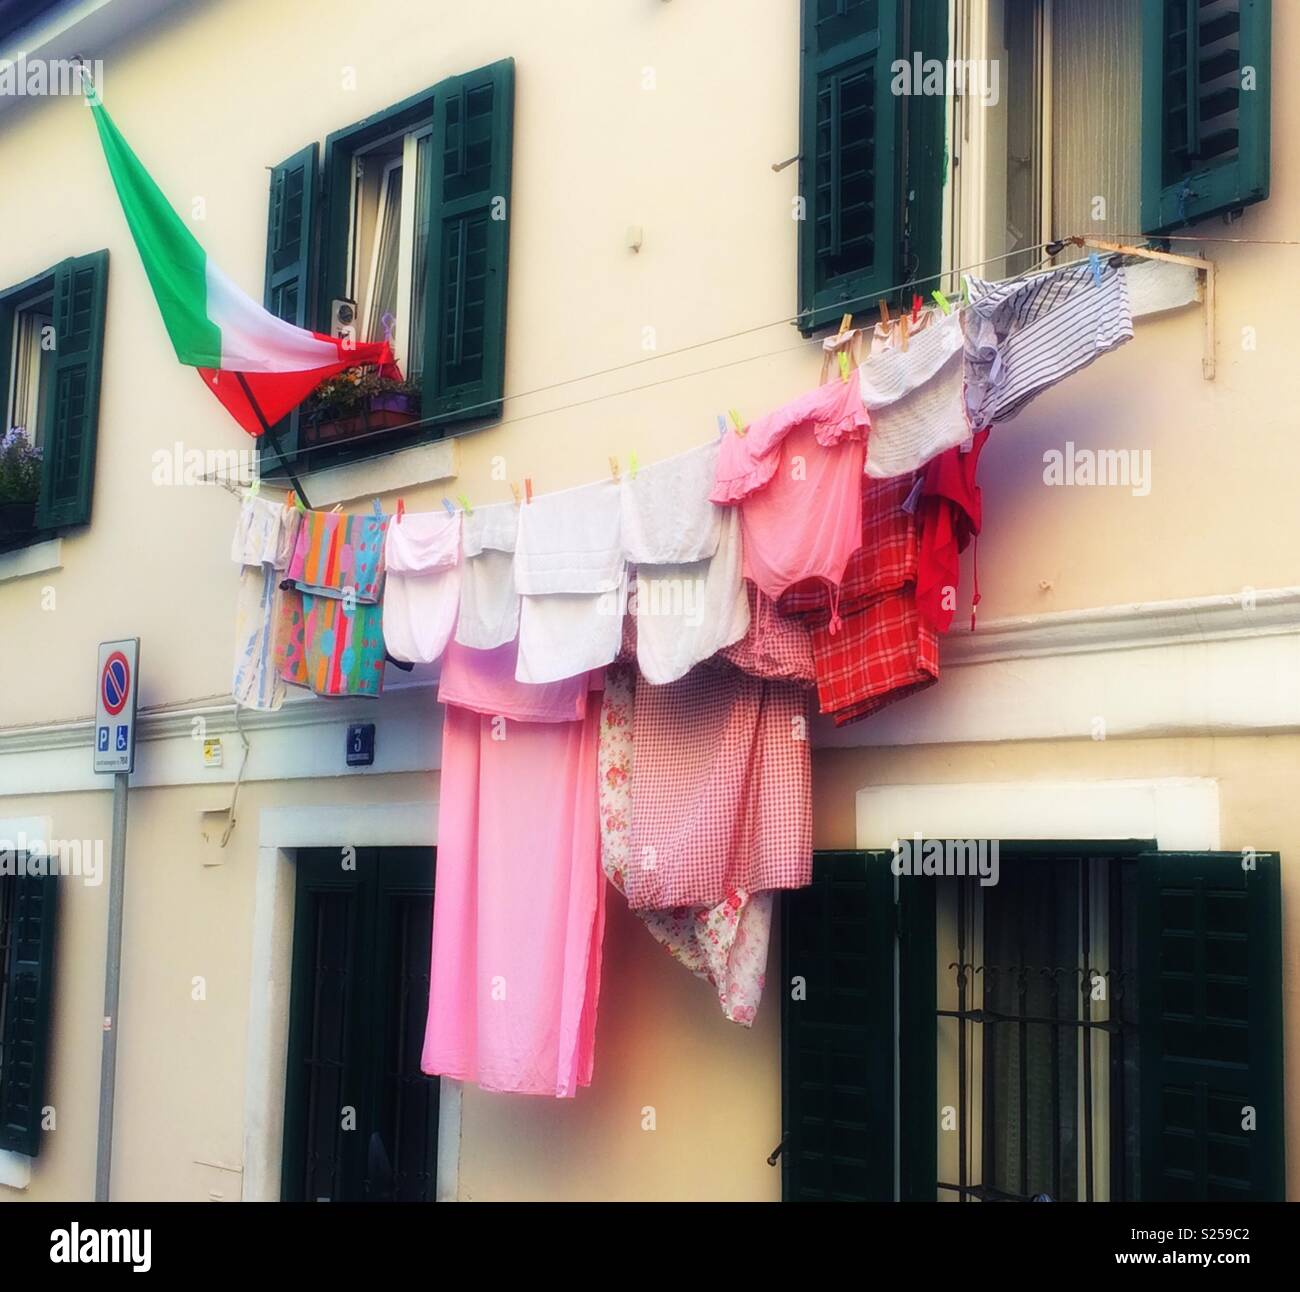 Drying laundry and Italian flag hanging outside a house in Trieste ...